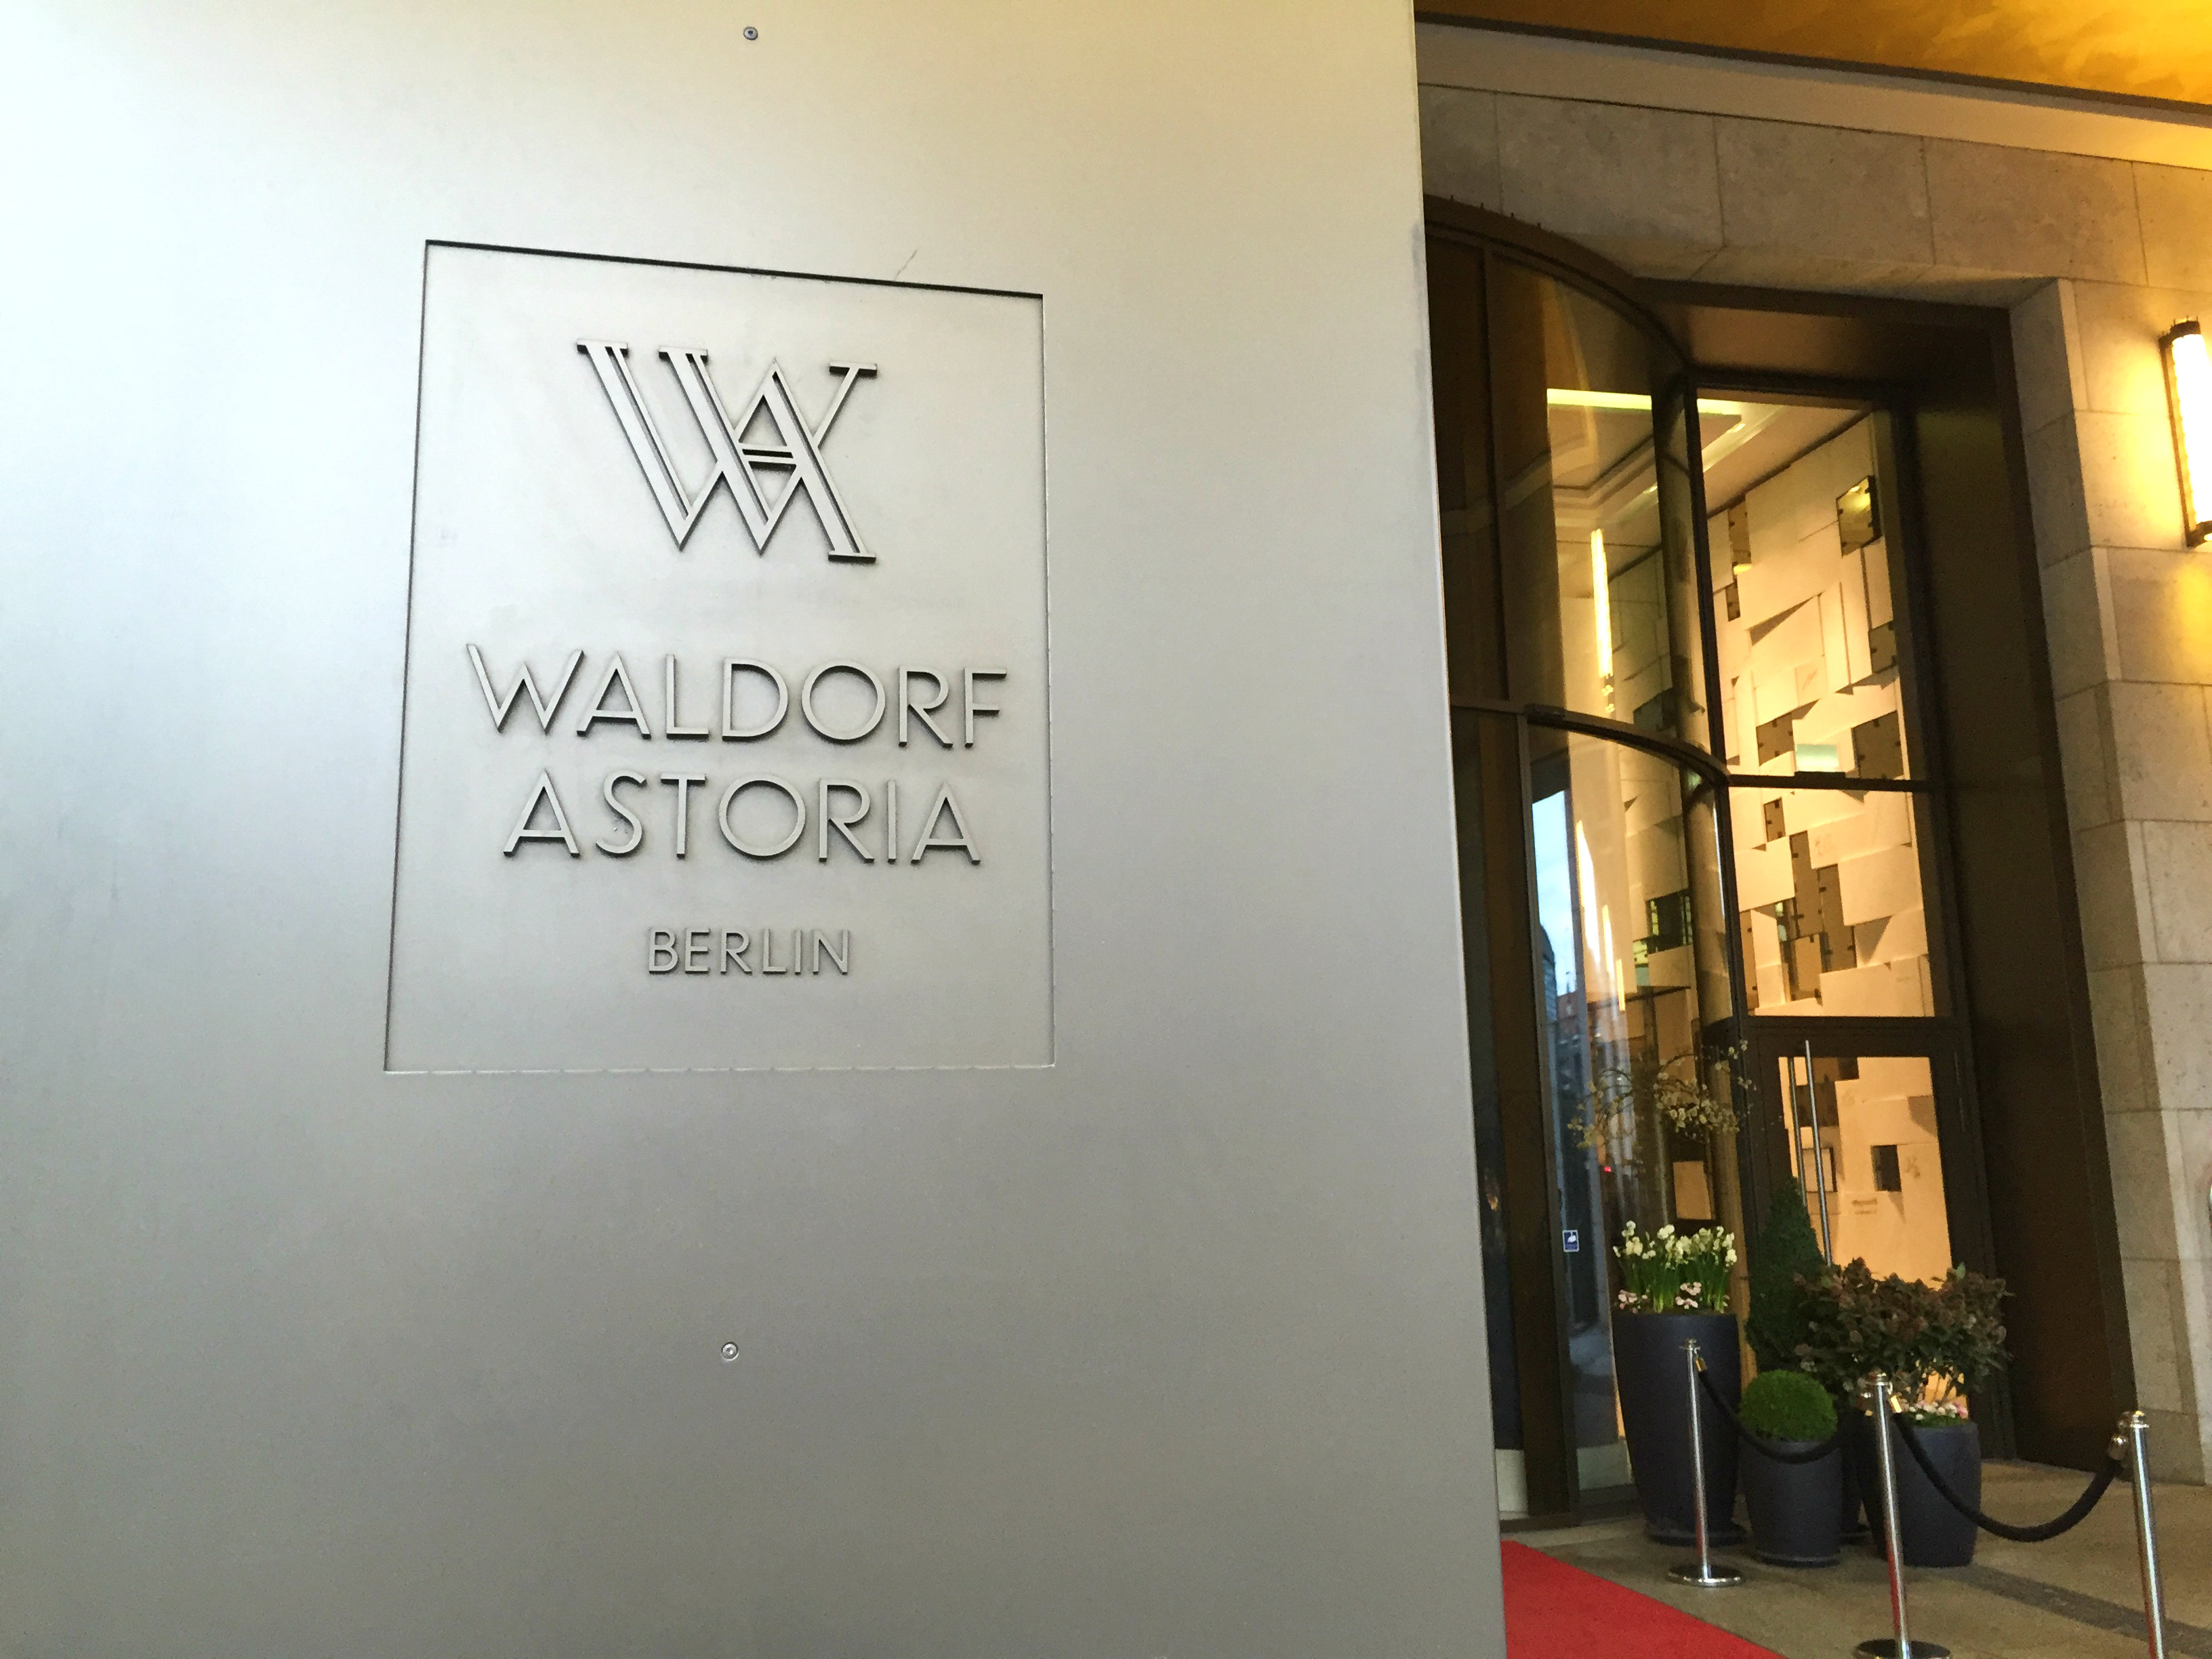 Waldorf Astoria Berlin name outside